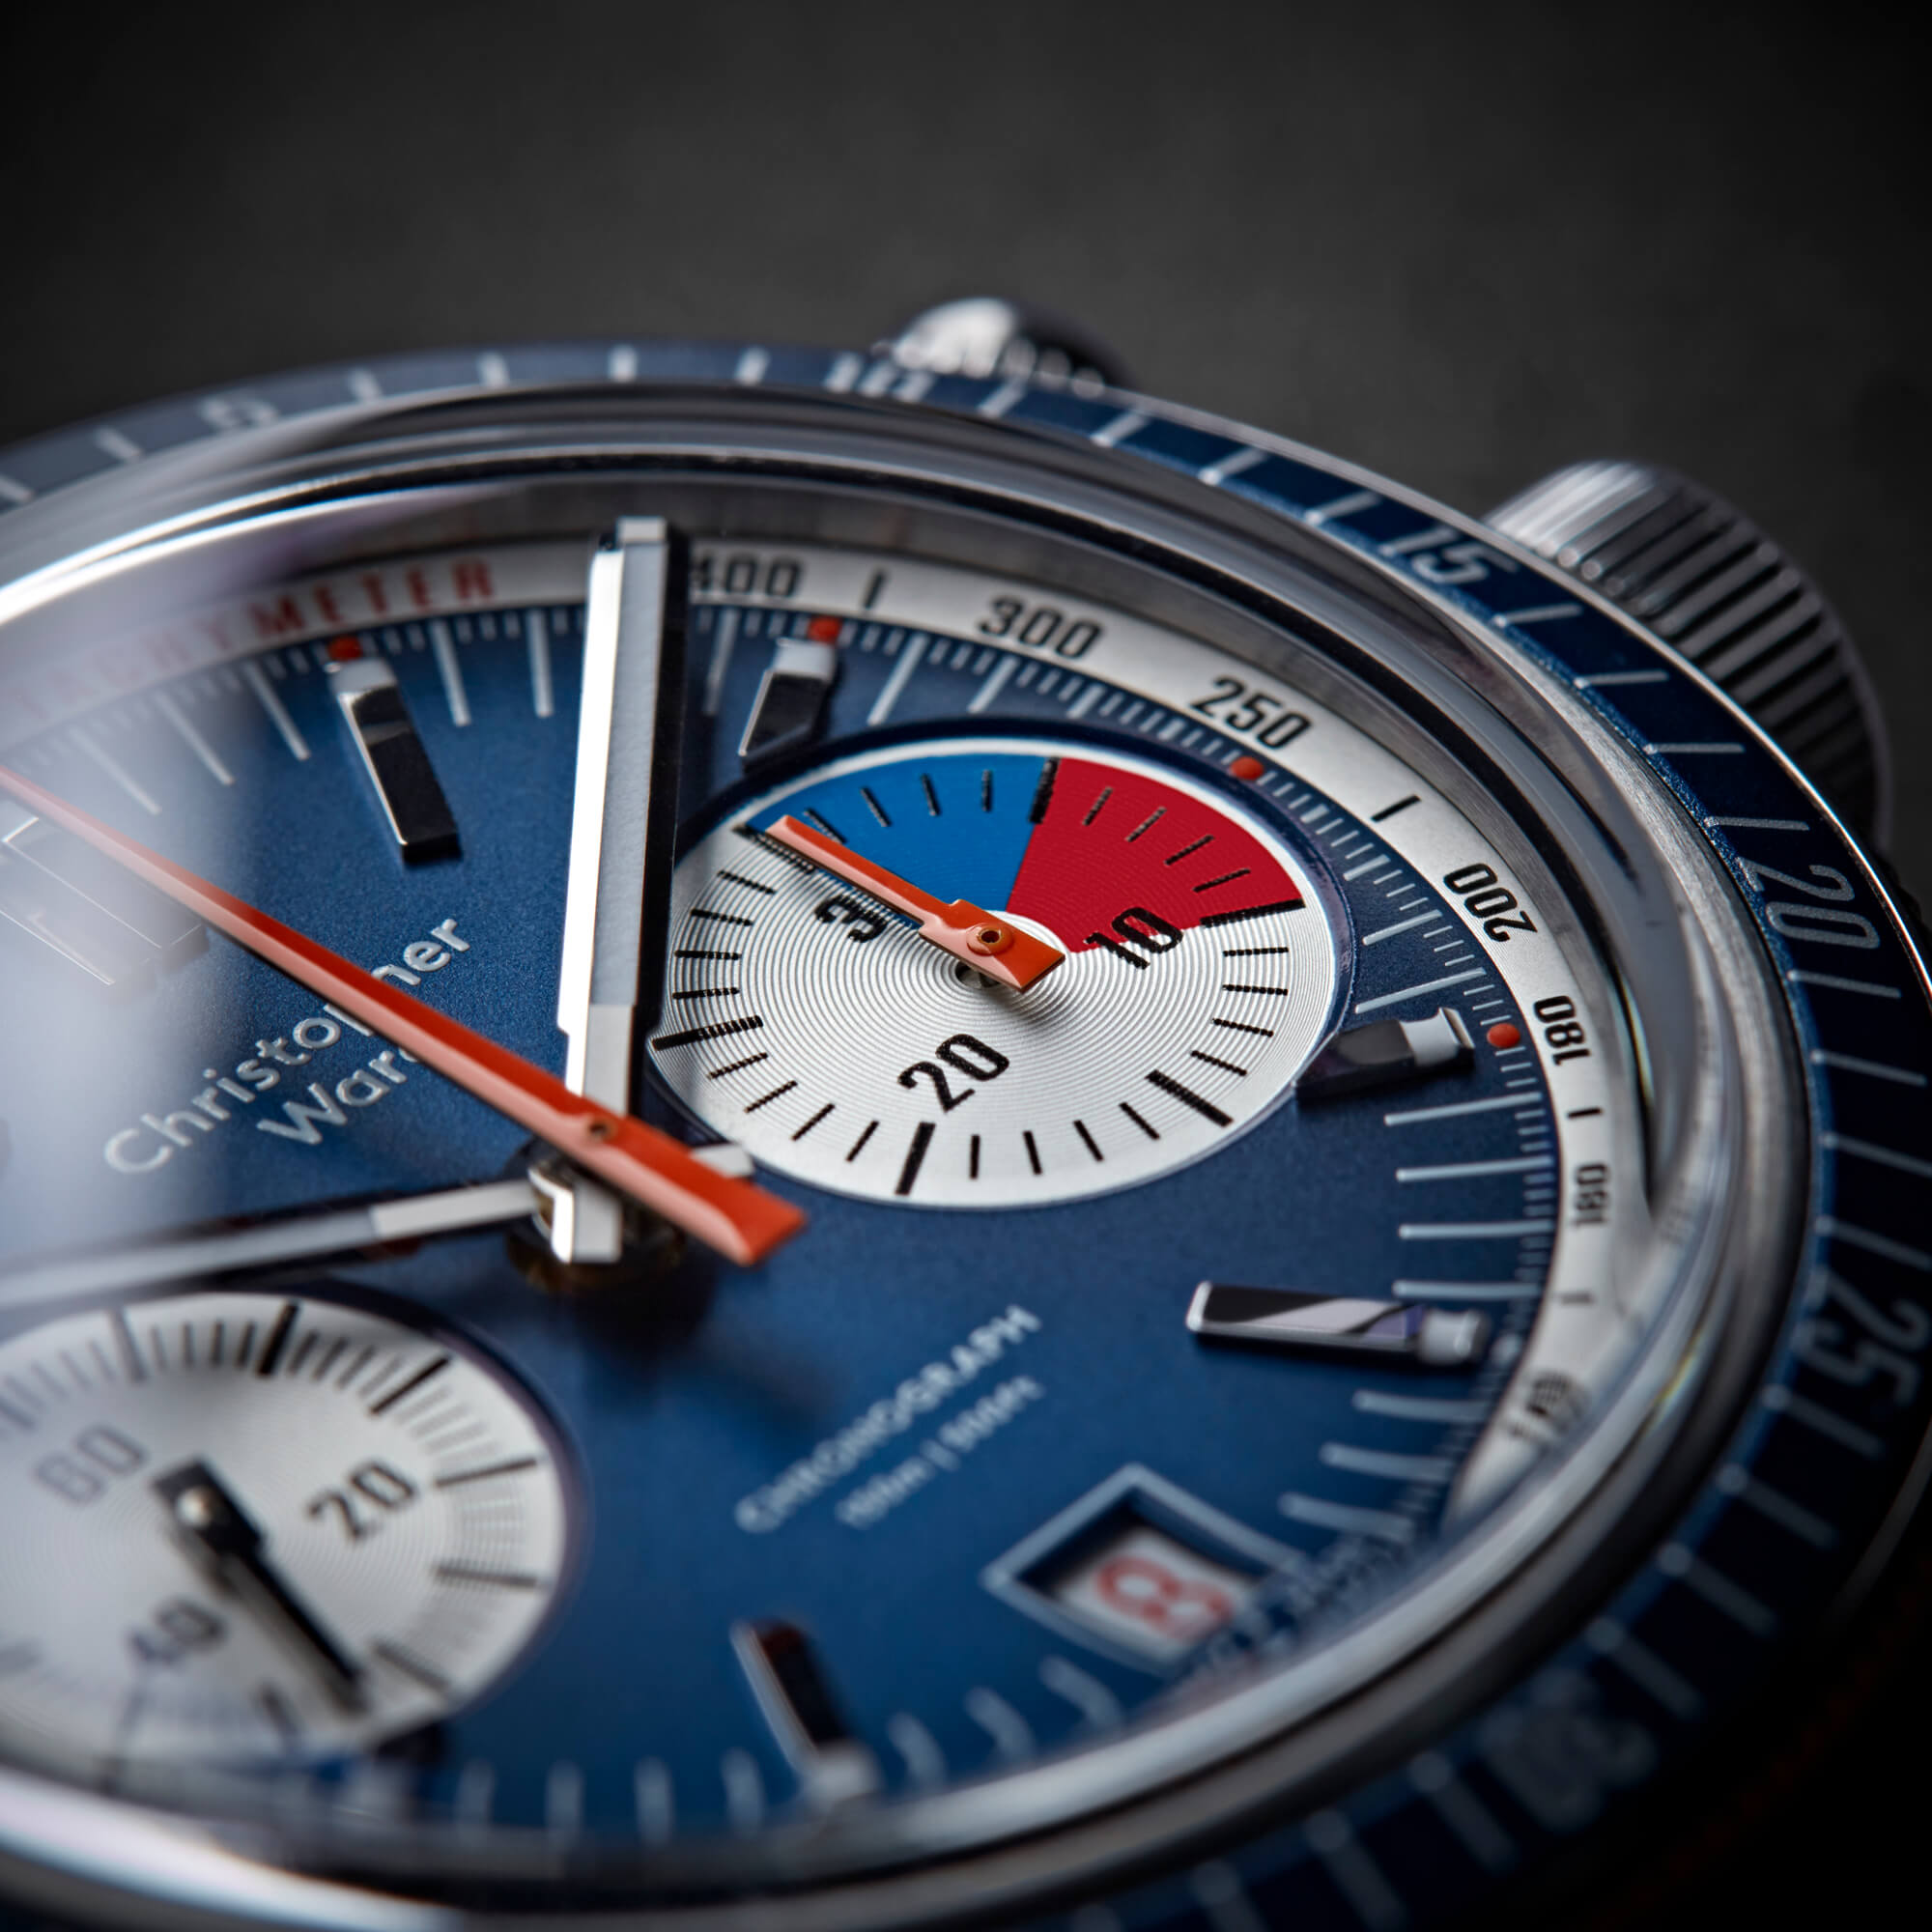 C65-Chronograph-from-1695-www.christopherward.co .uk-5-Copy